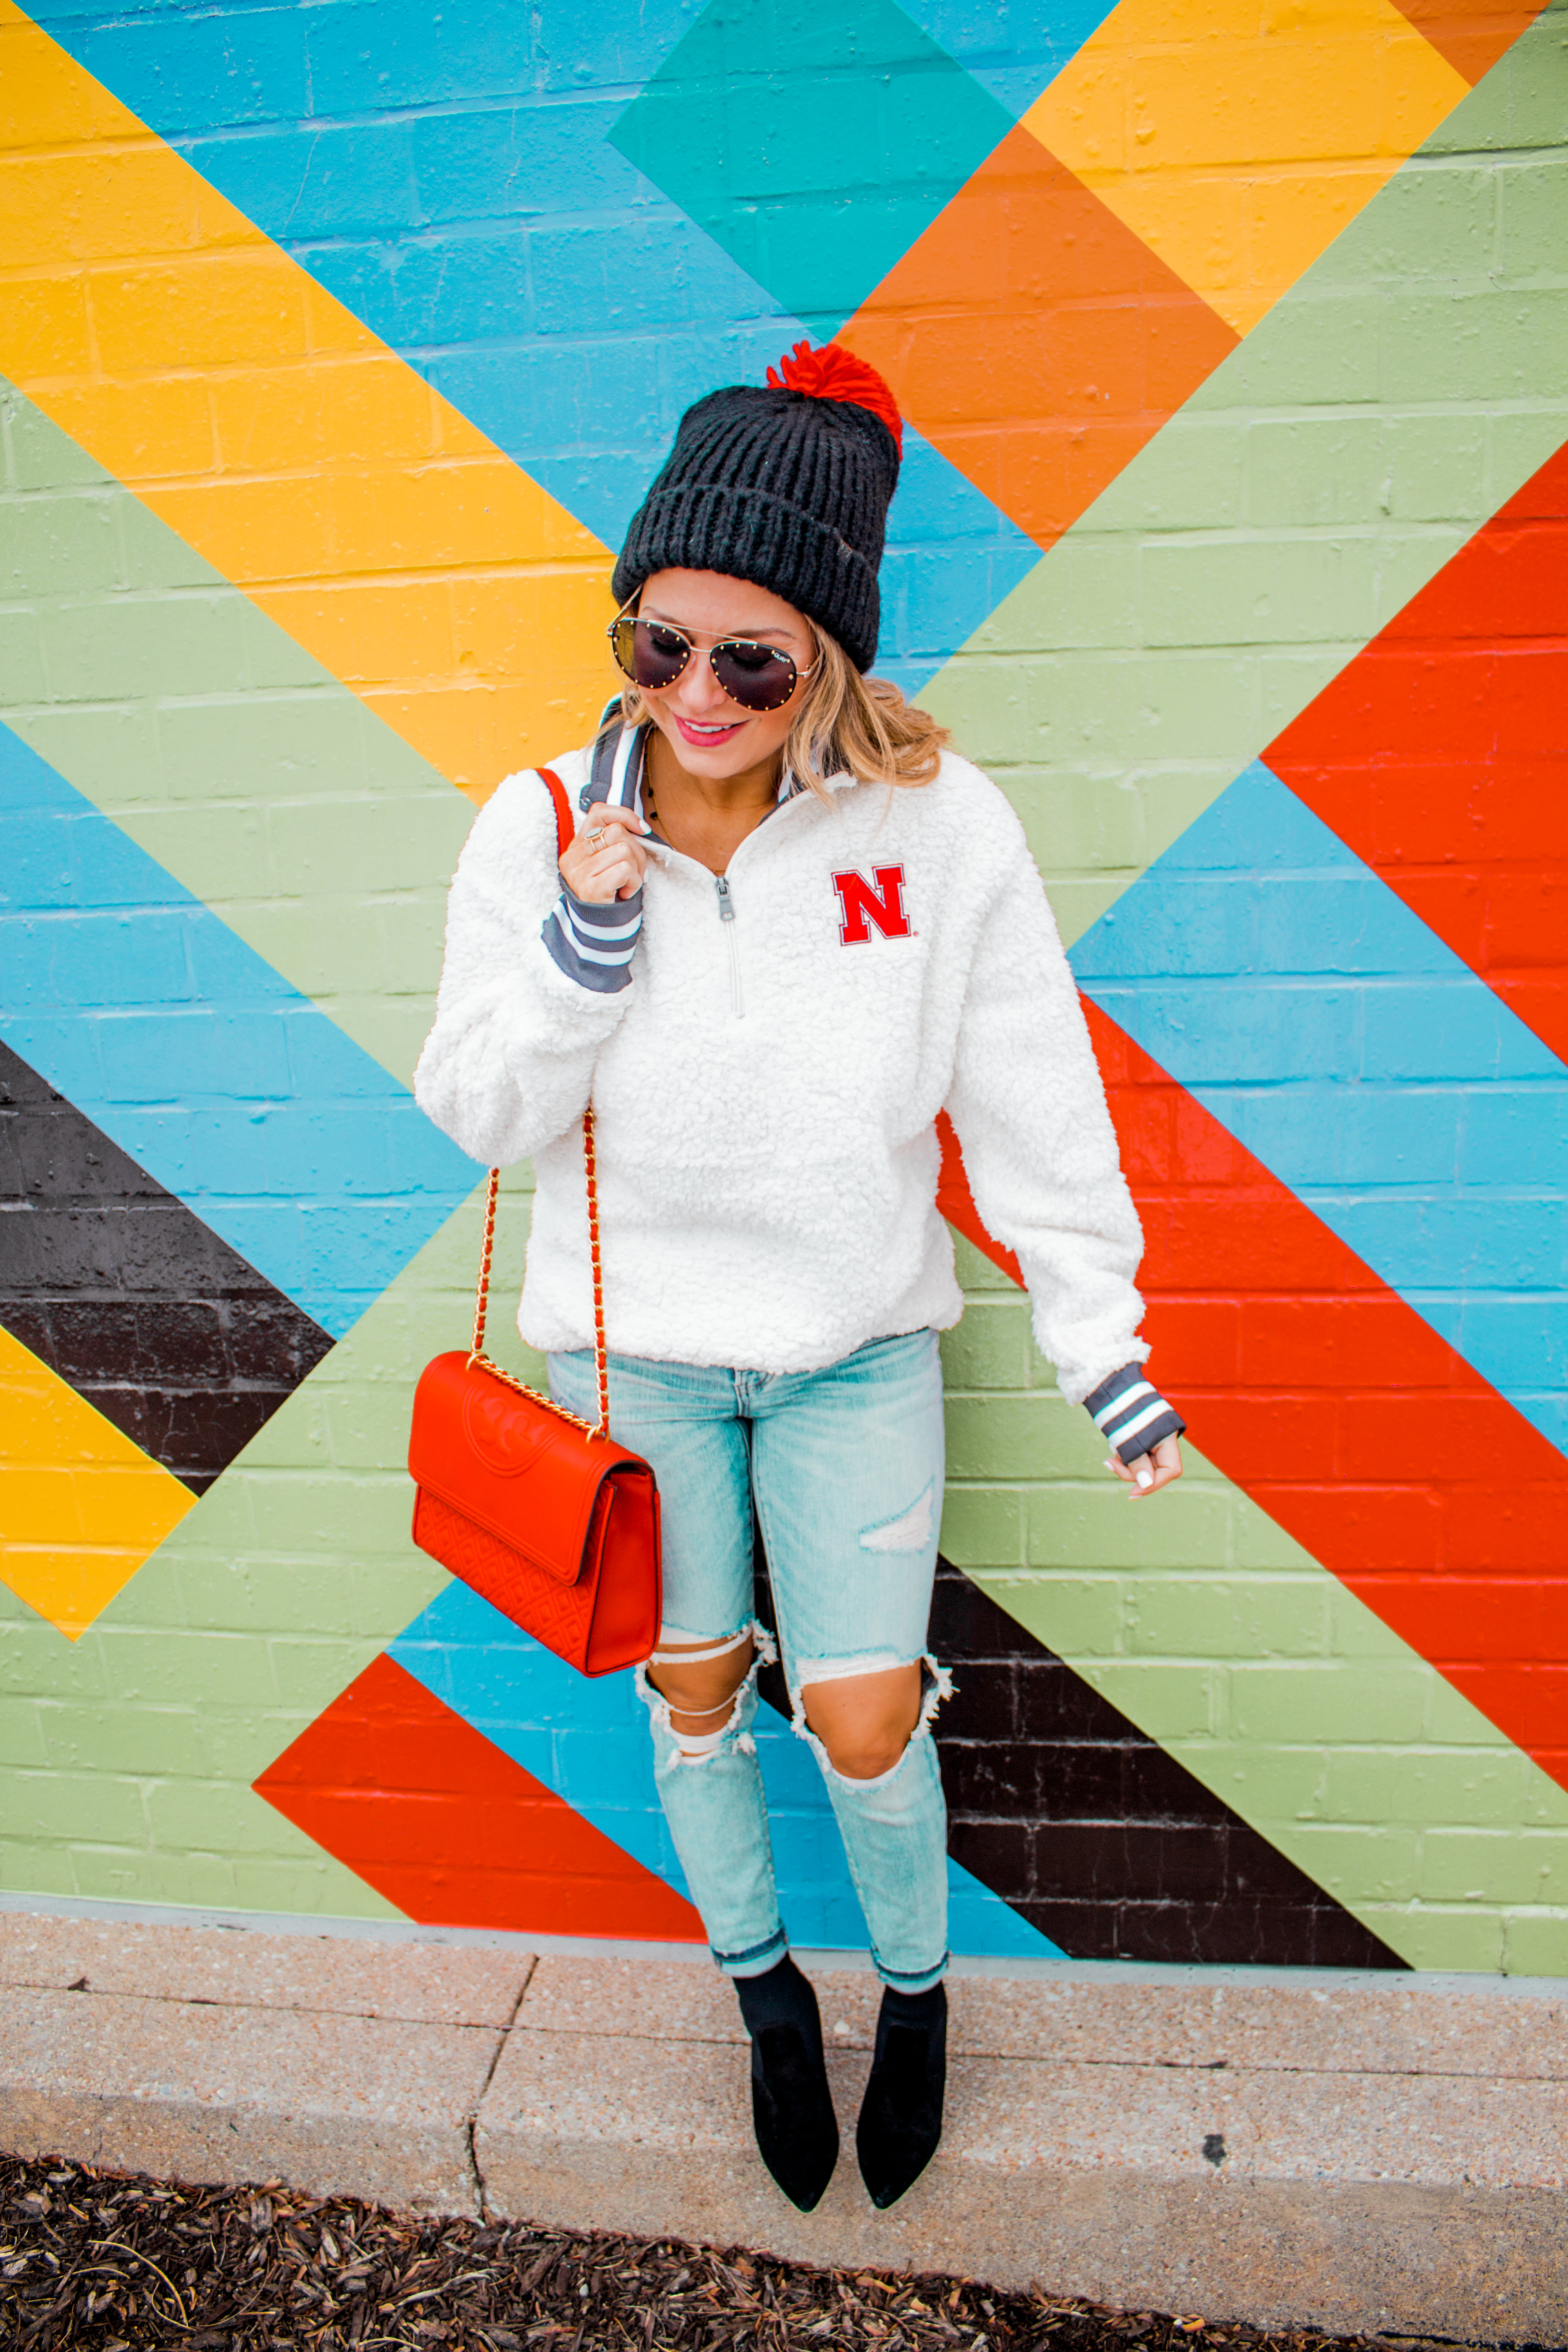 Nebraska - Women's Fashion - Sherpa - Husker - Pullover - Husker Gear - Omaha Blogger - Sabby Style - Casual Outfit - 17